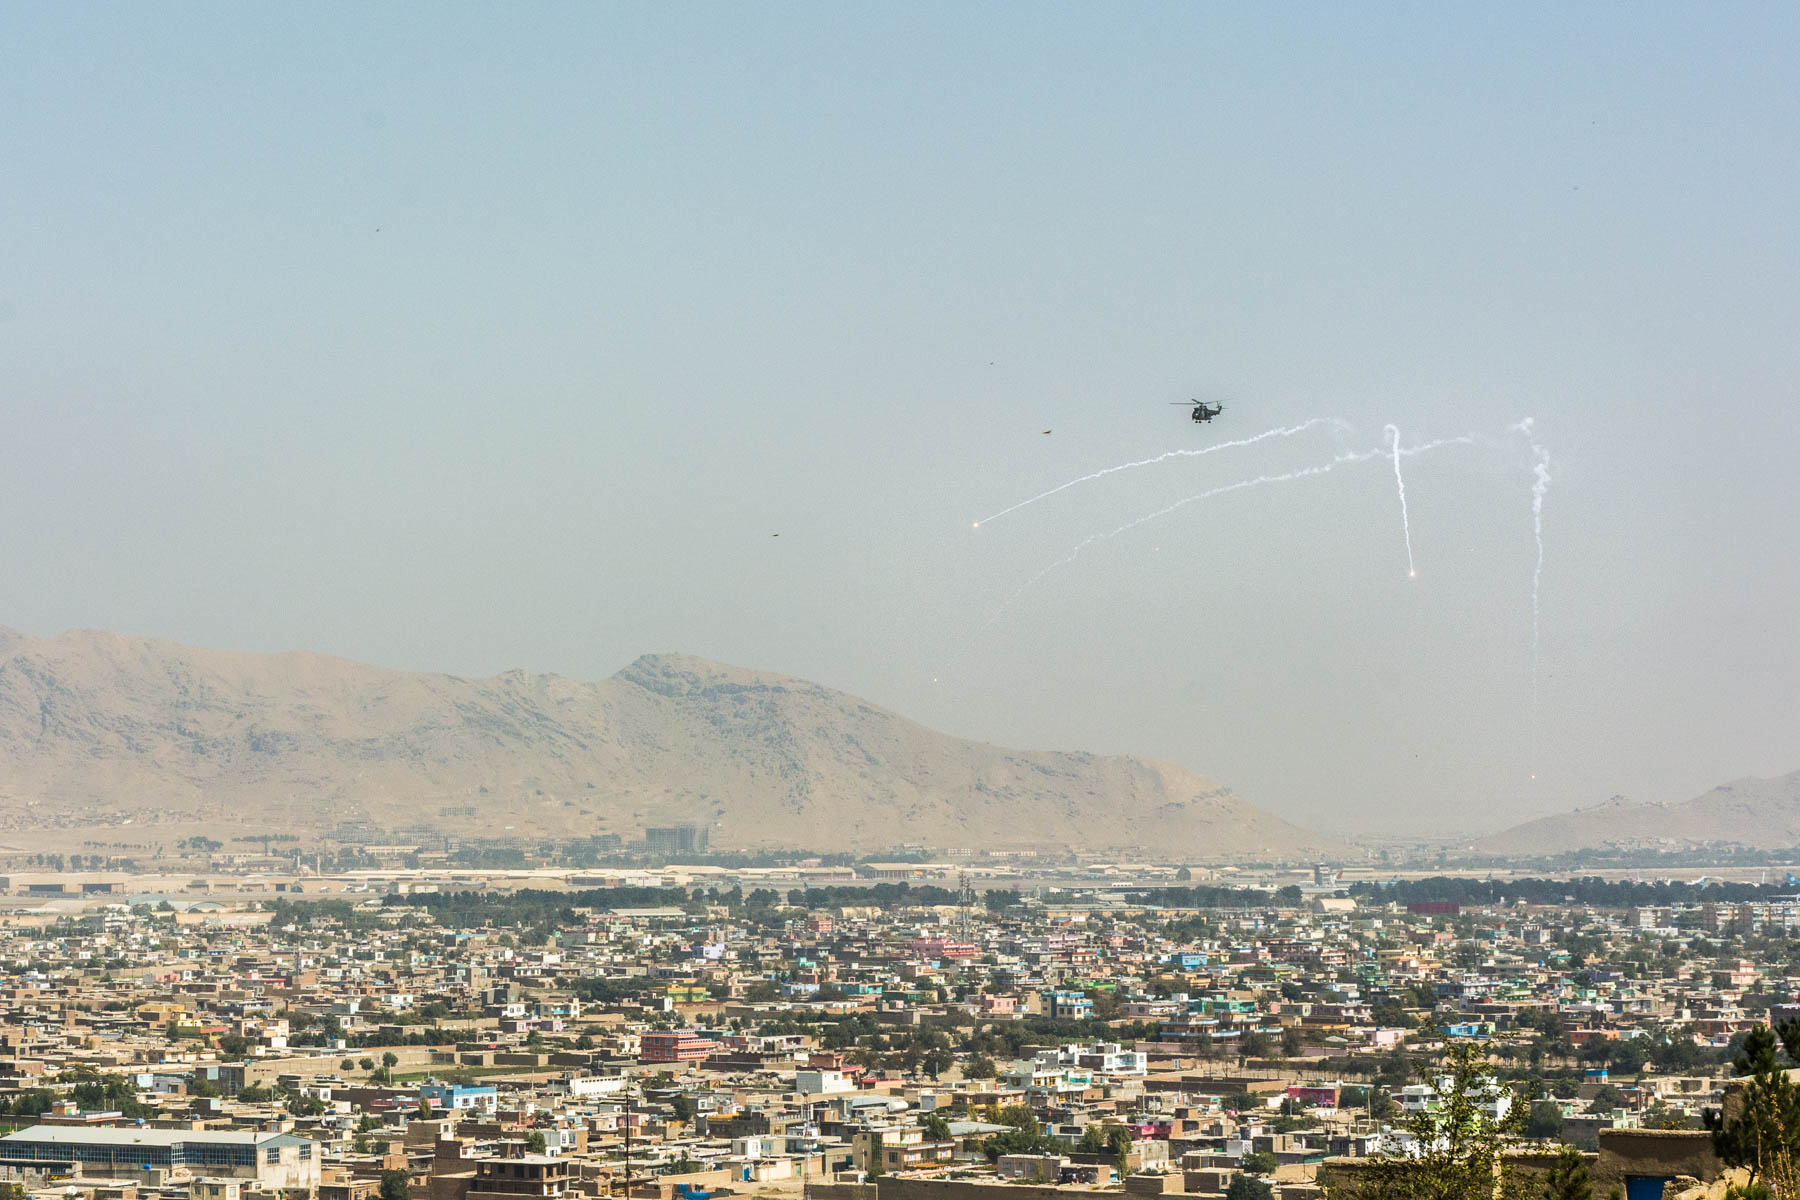 A military helicopter patrolling the skies of Kabul, Afghanistan